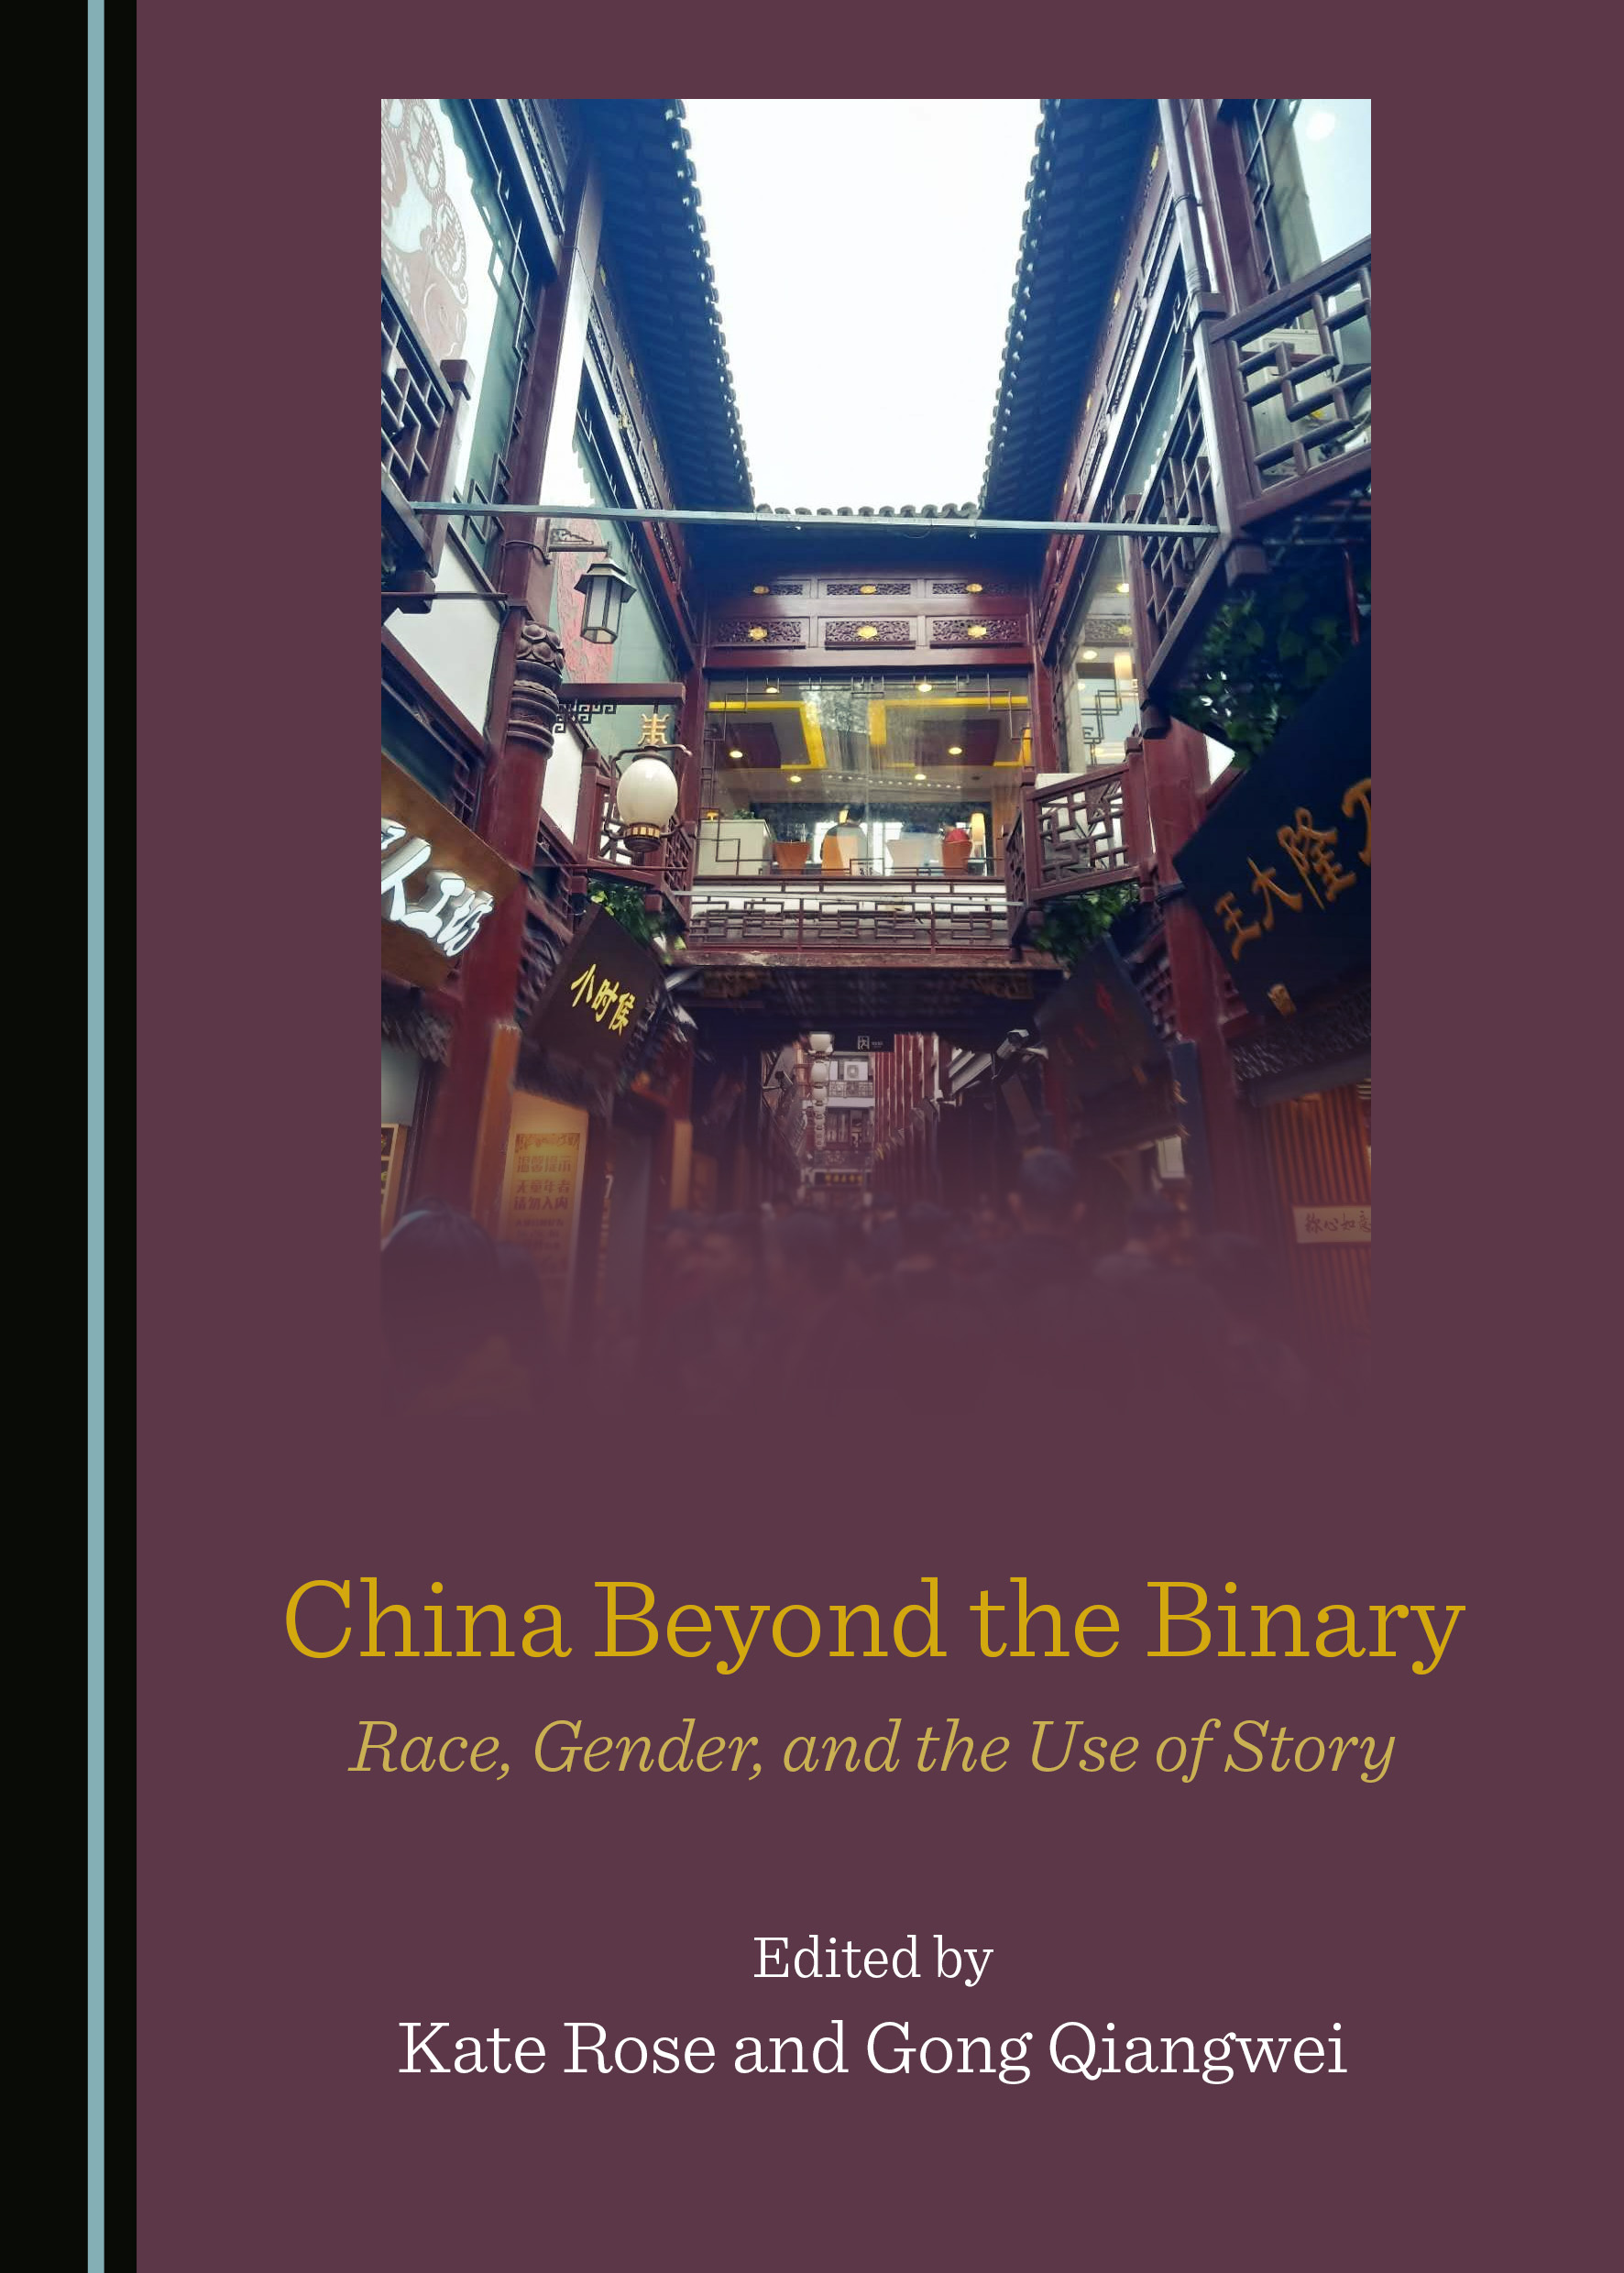 China Beyond the Binary: Race, Gender, and the Use of Story